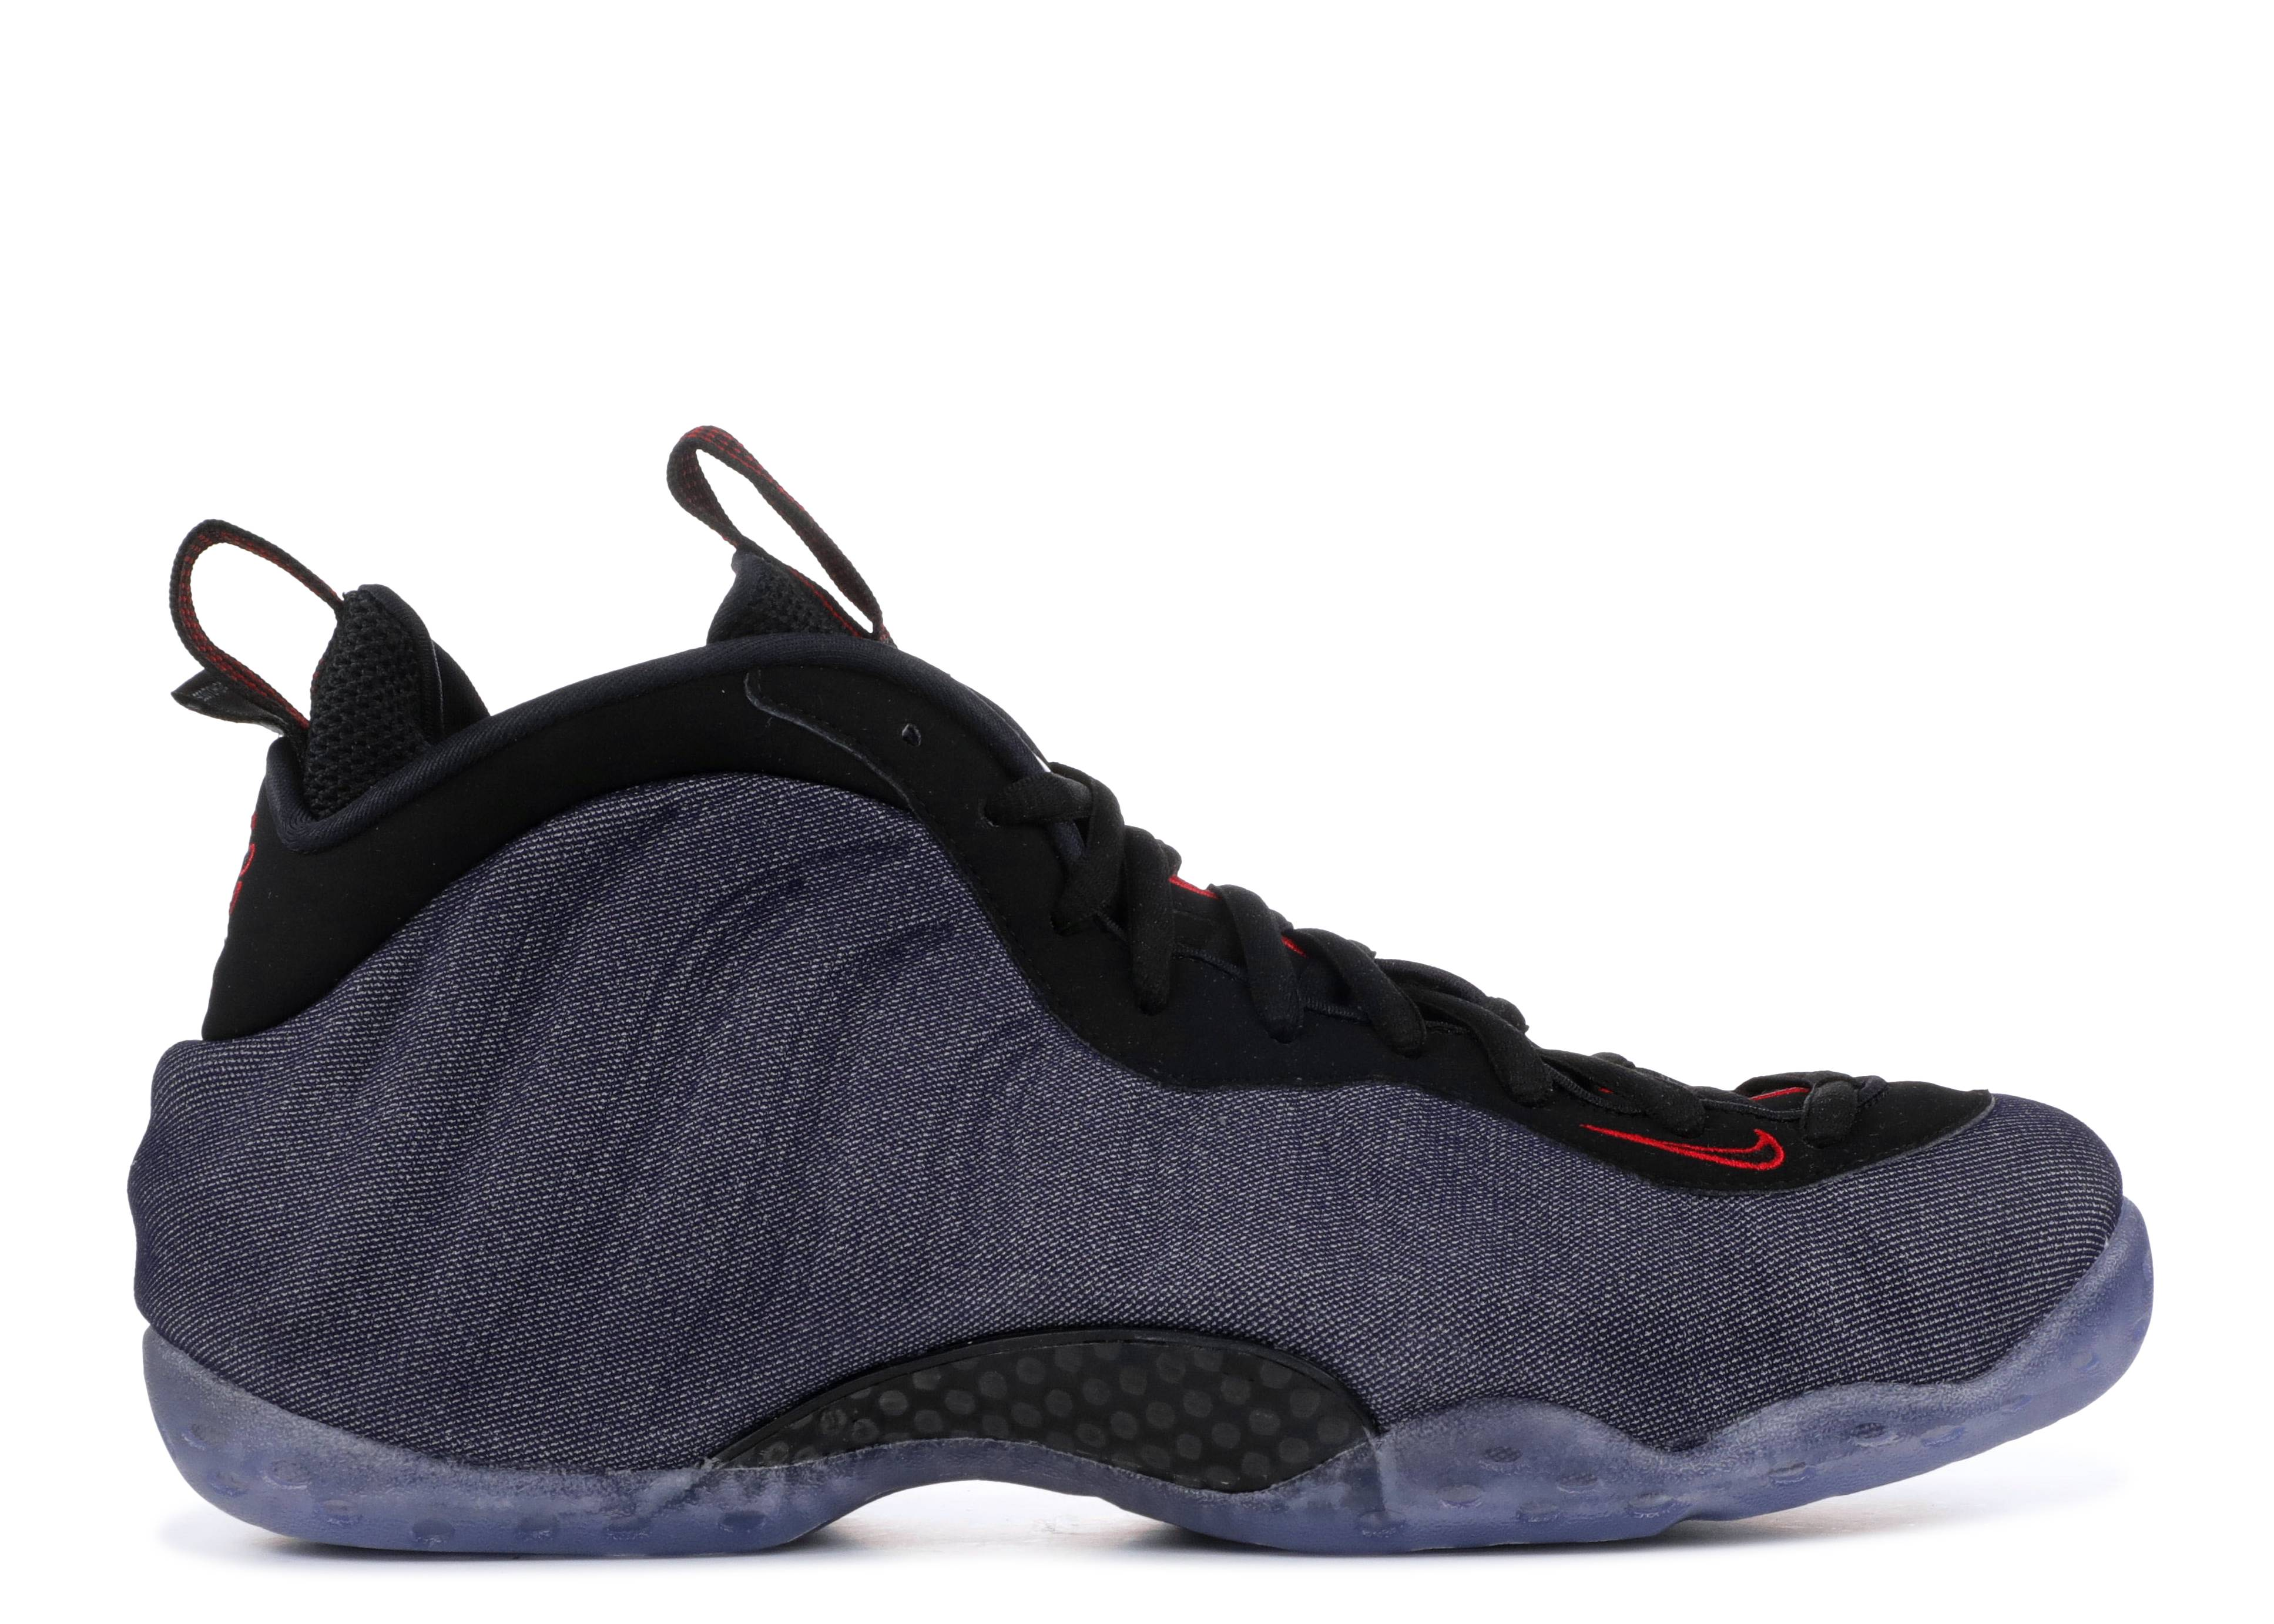 ff3ee01df57 Air Foamposite One